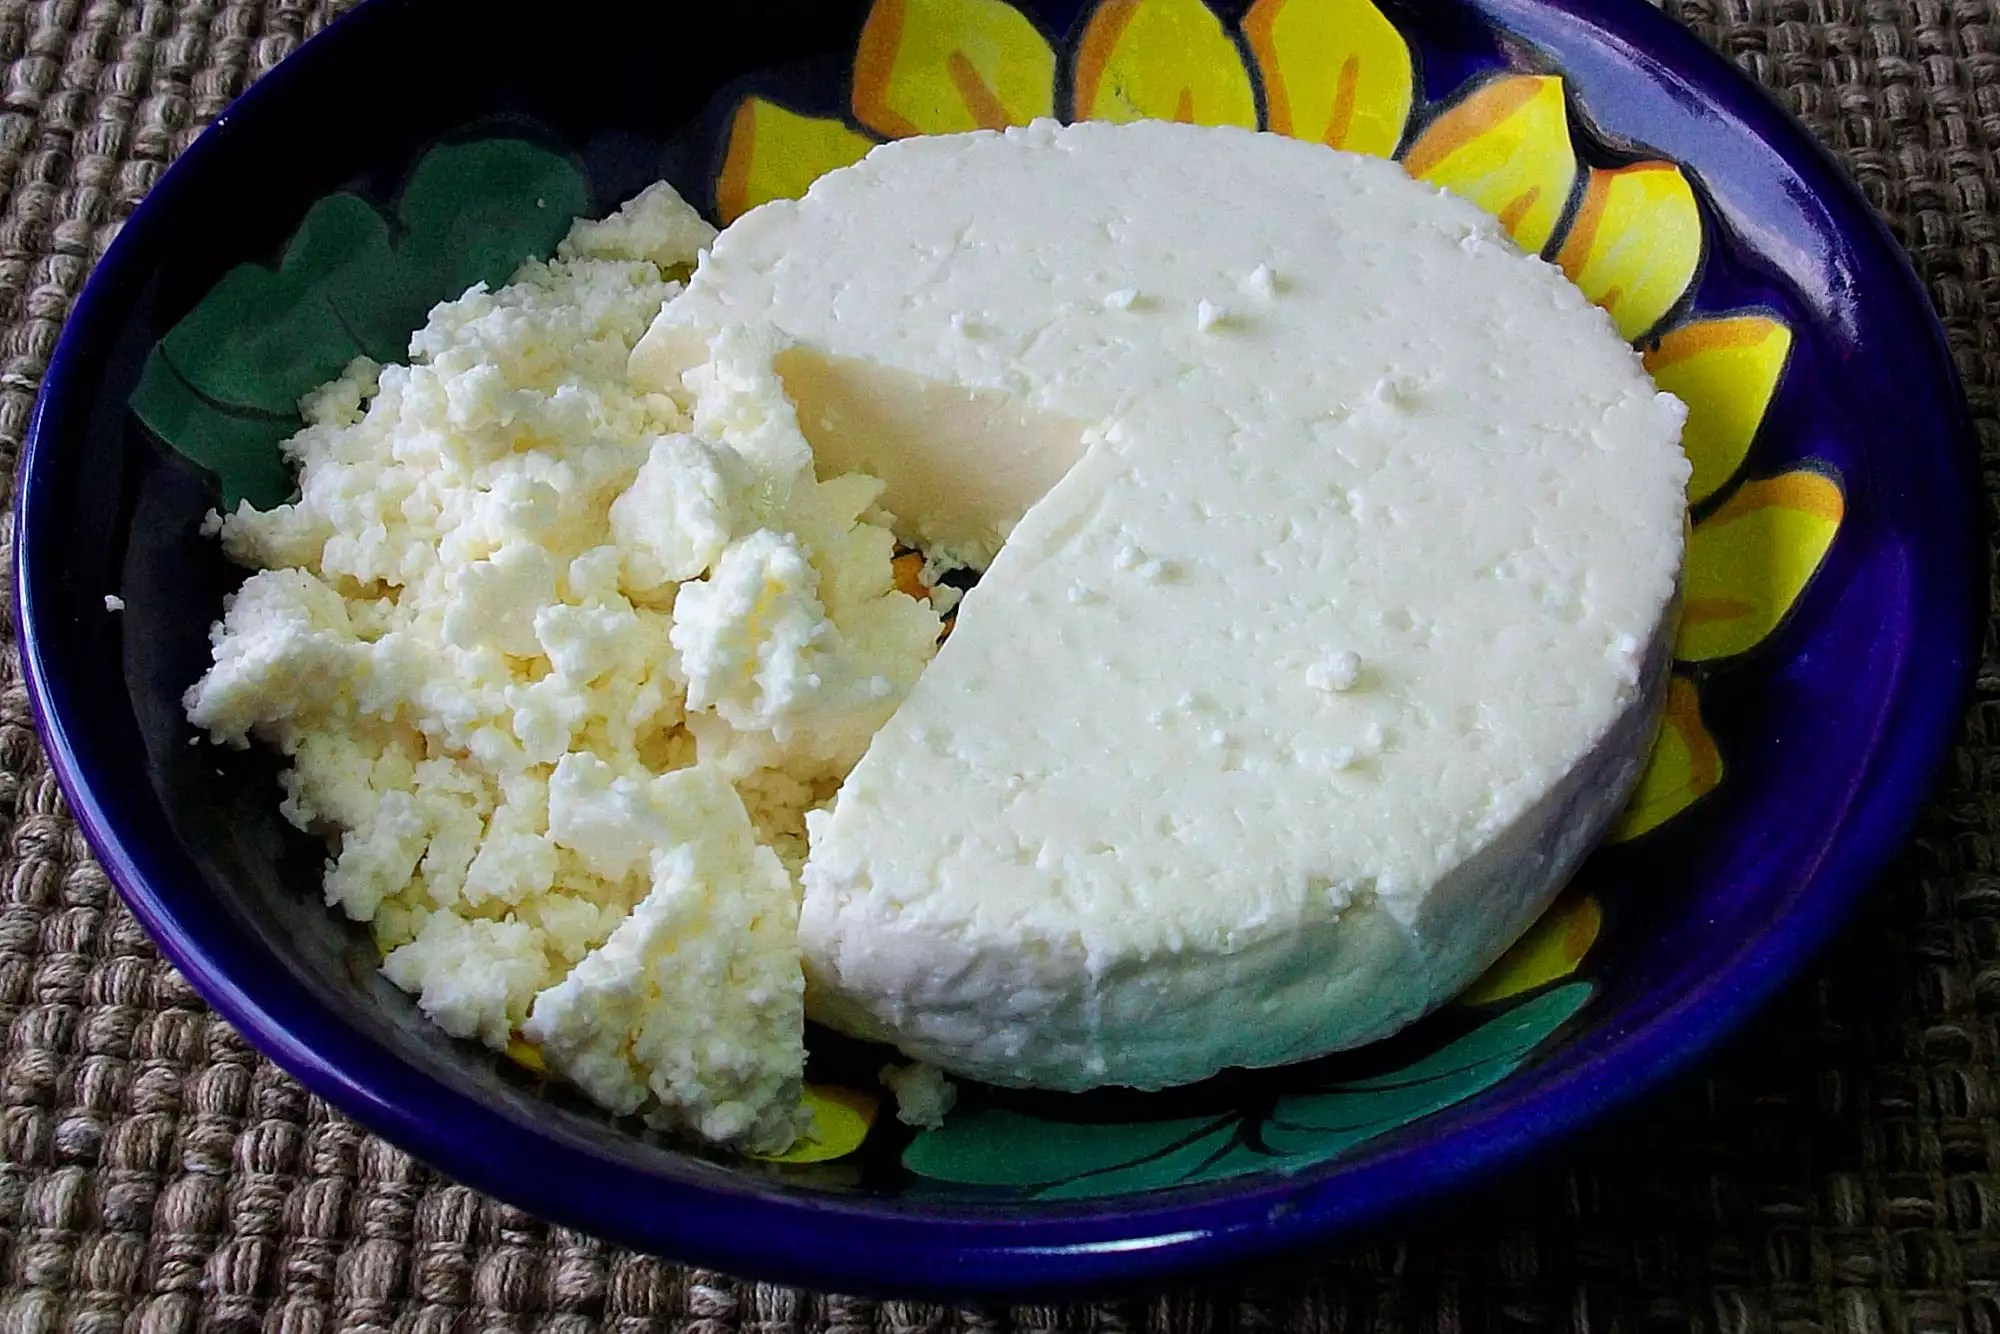 A plate of queso fresco